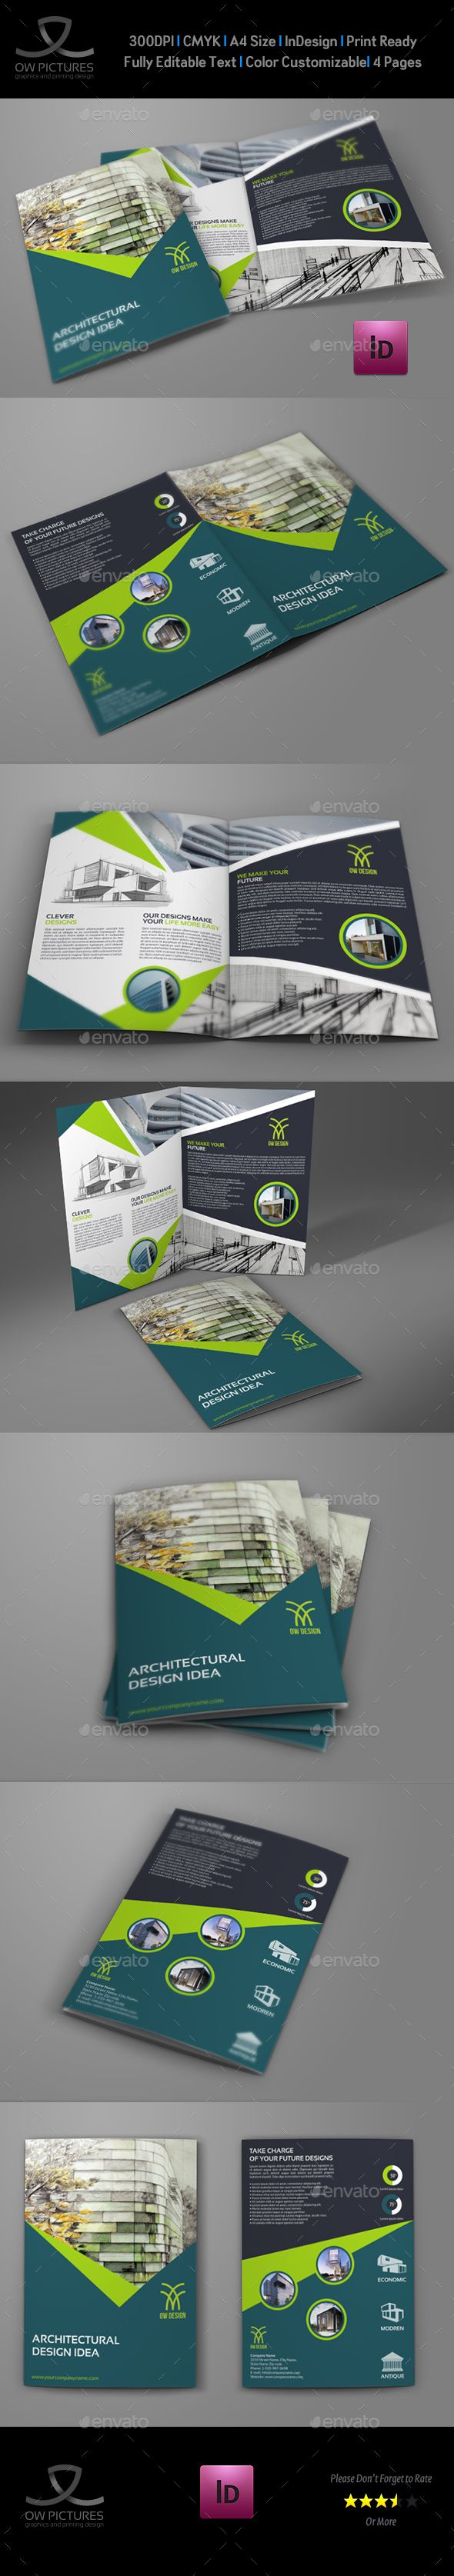 The 86 best Bi Fold Brochure images on Pinterest   Brochure template     Architectural Design Bi Fold Brochure Template